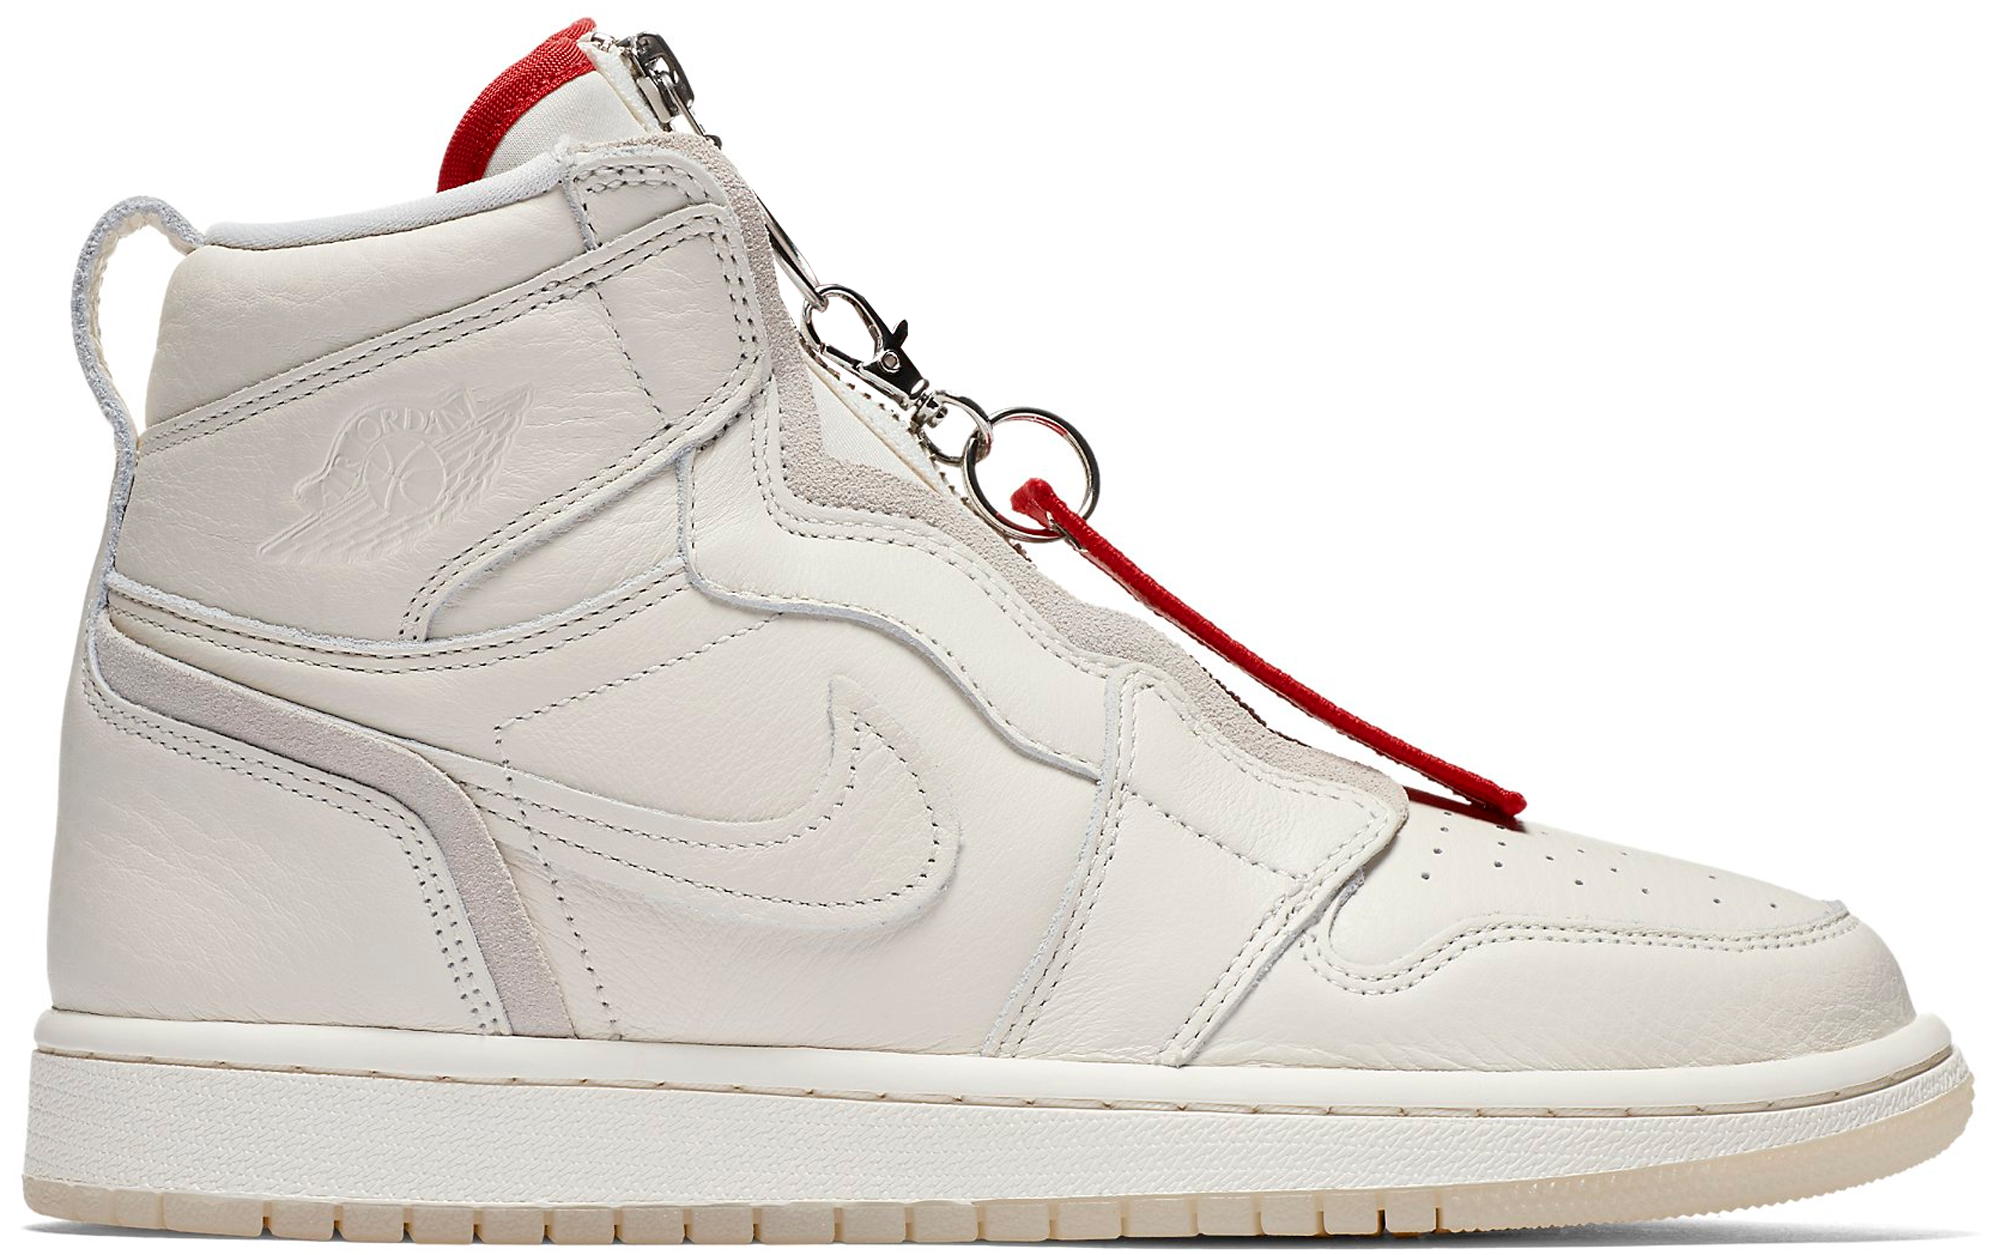 Jordan 1 Retro High Zip AWOK Vogue Sail (W)